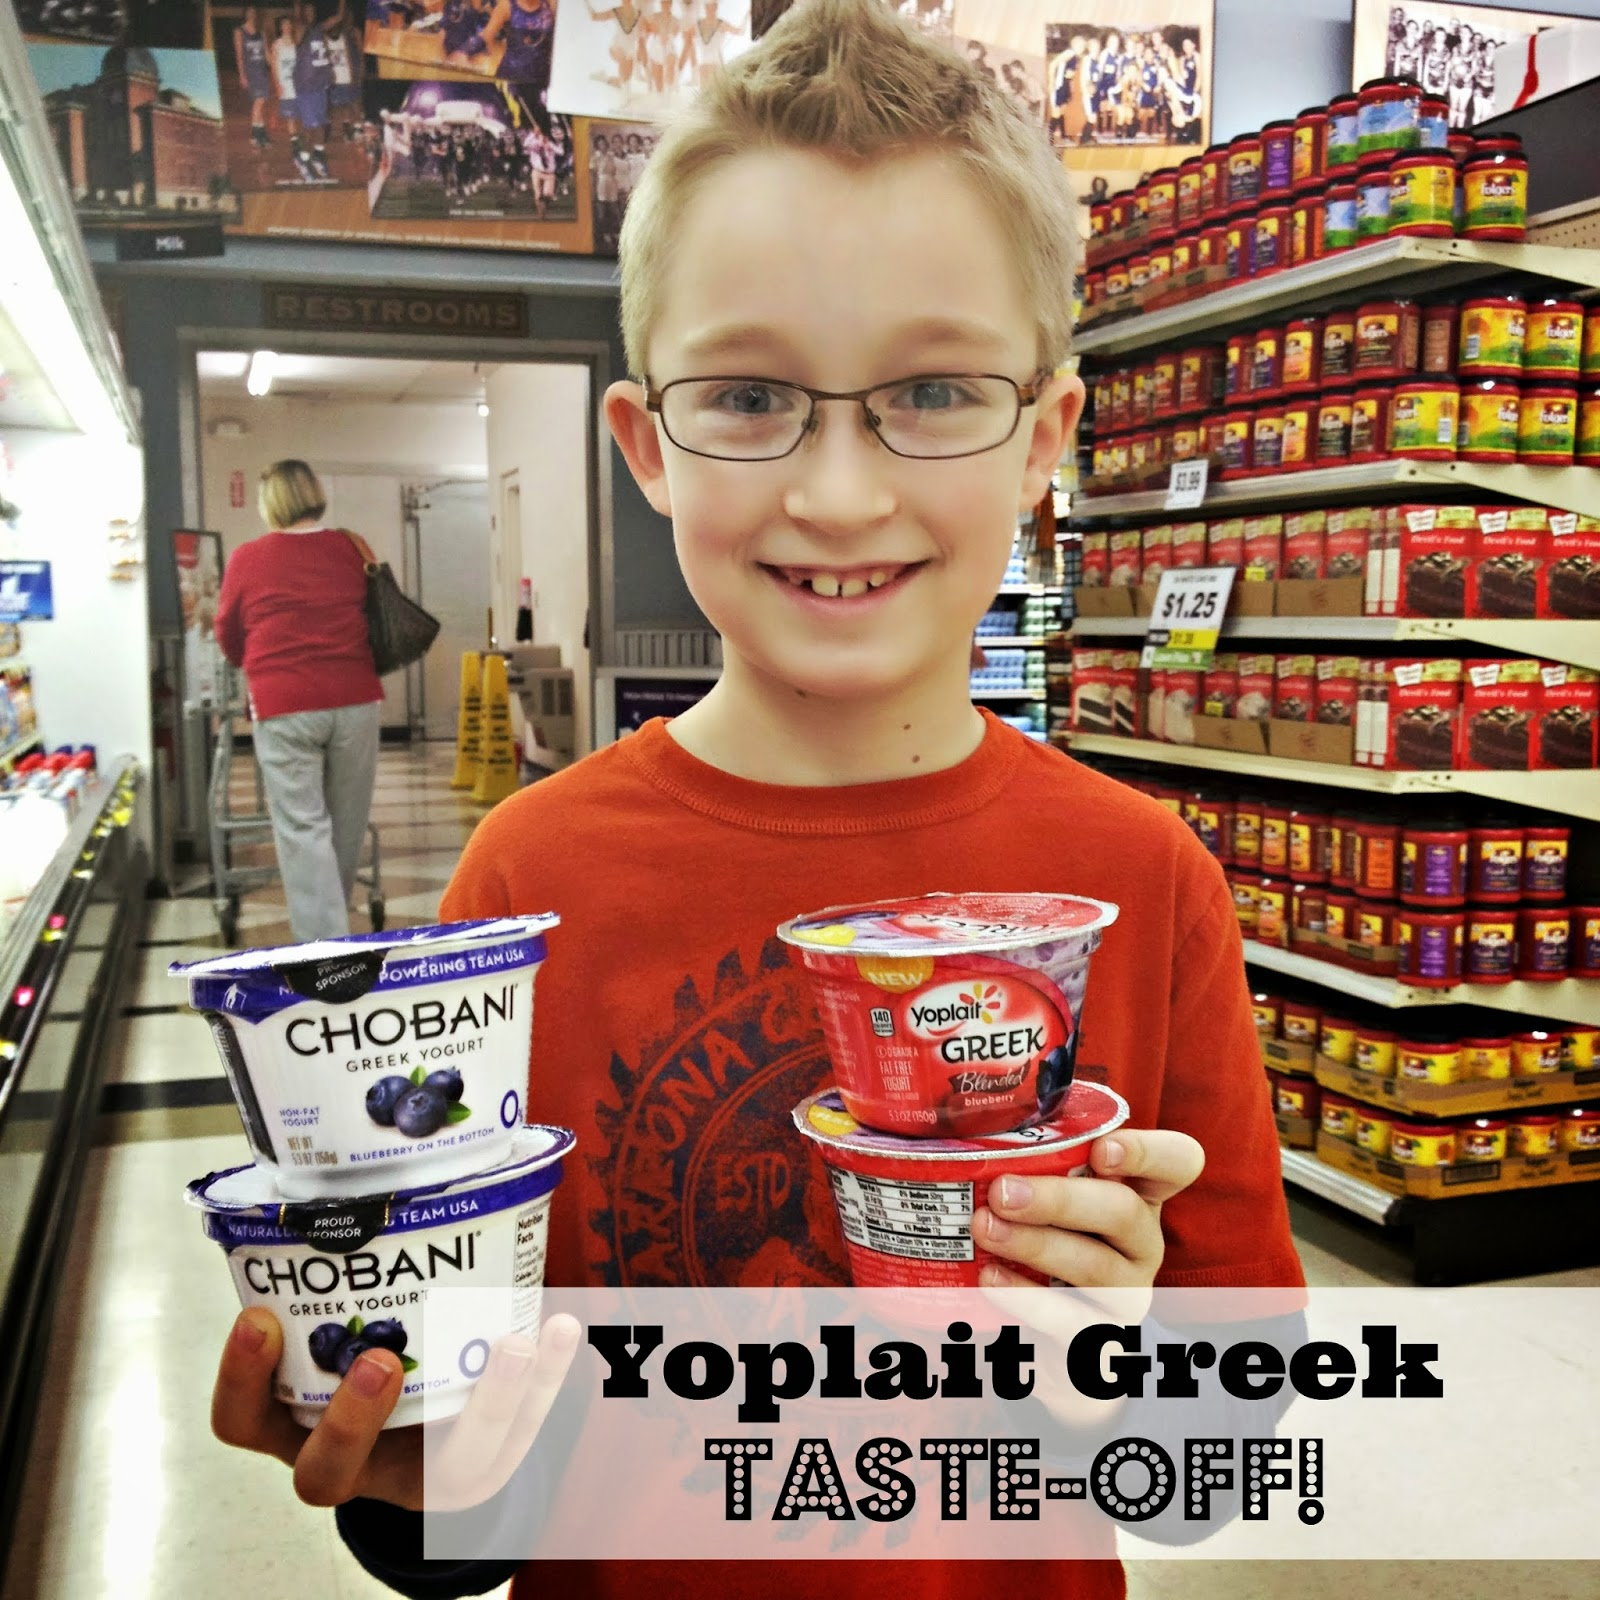 Yoplait Greek Taste-off #sponsored